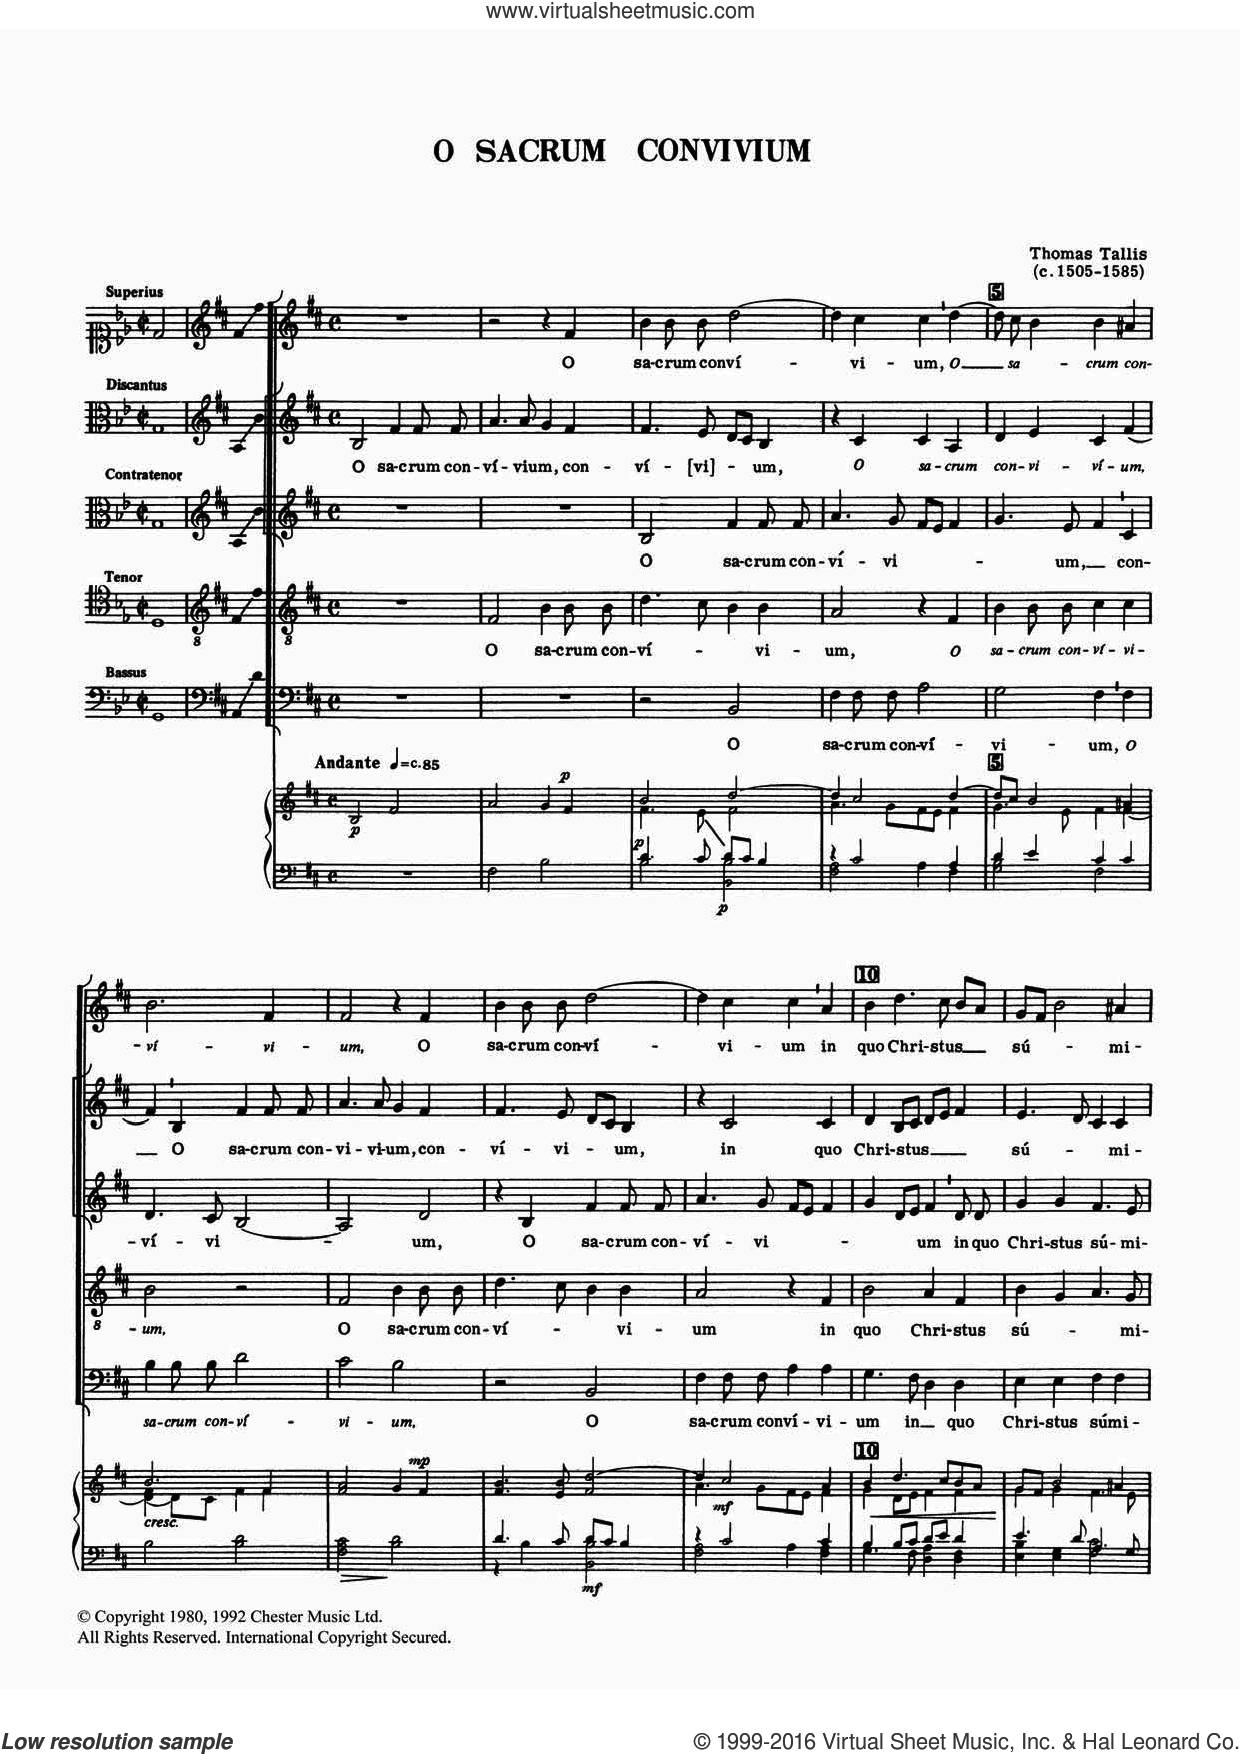 O Sacrum Convivium sheet music for voice, piano or guitar by Thomas Tallis, classical score, intermediate